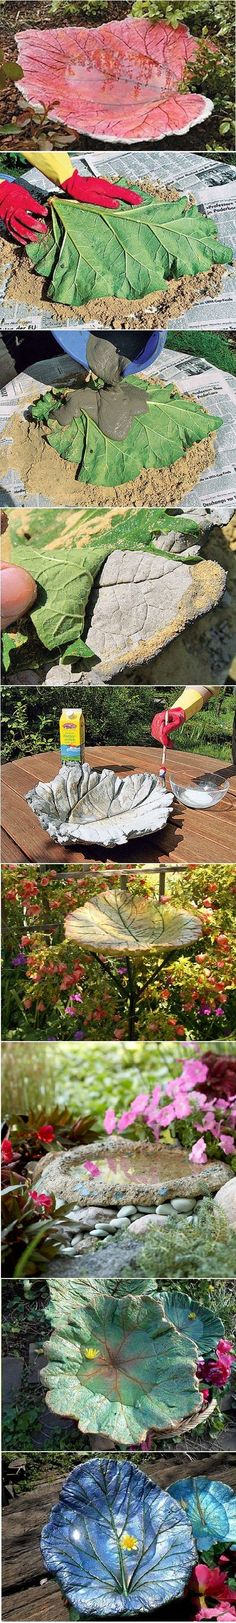 How To Make A Stand Cast Birdbath in Leaf Shape(Diy Garden Projects) Garden Crafts, Garden Projects, Diy Projects, Concrete Leaves, Outdoor Projects, Dream Garden, Yard Art, Garden Inspiration, Style Inspiration